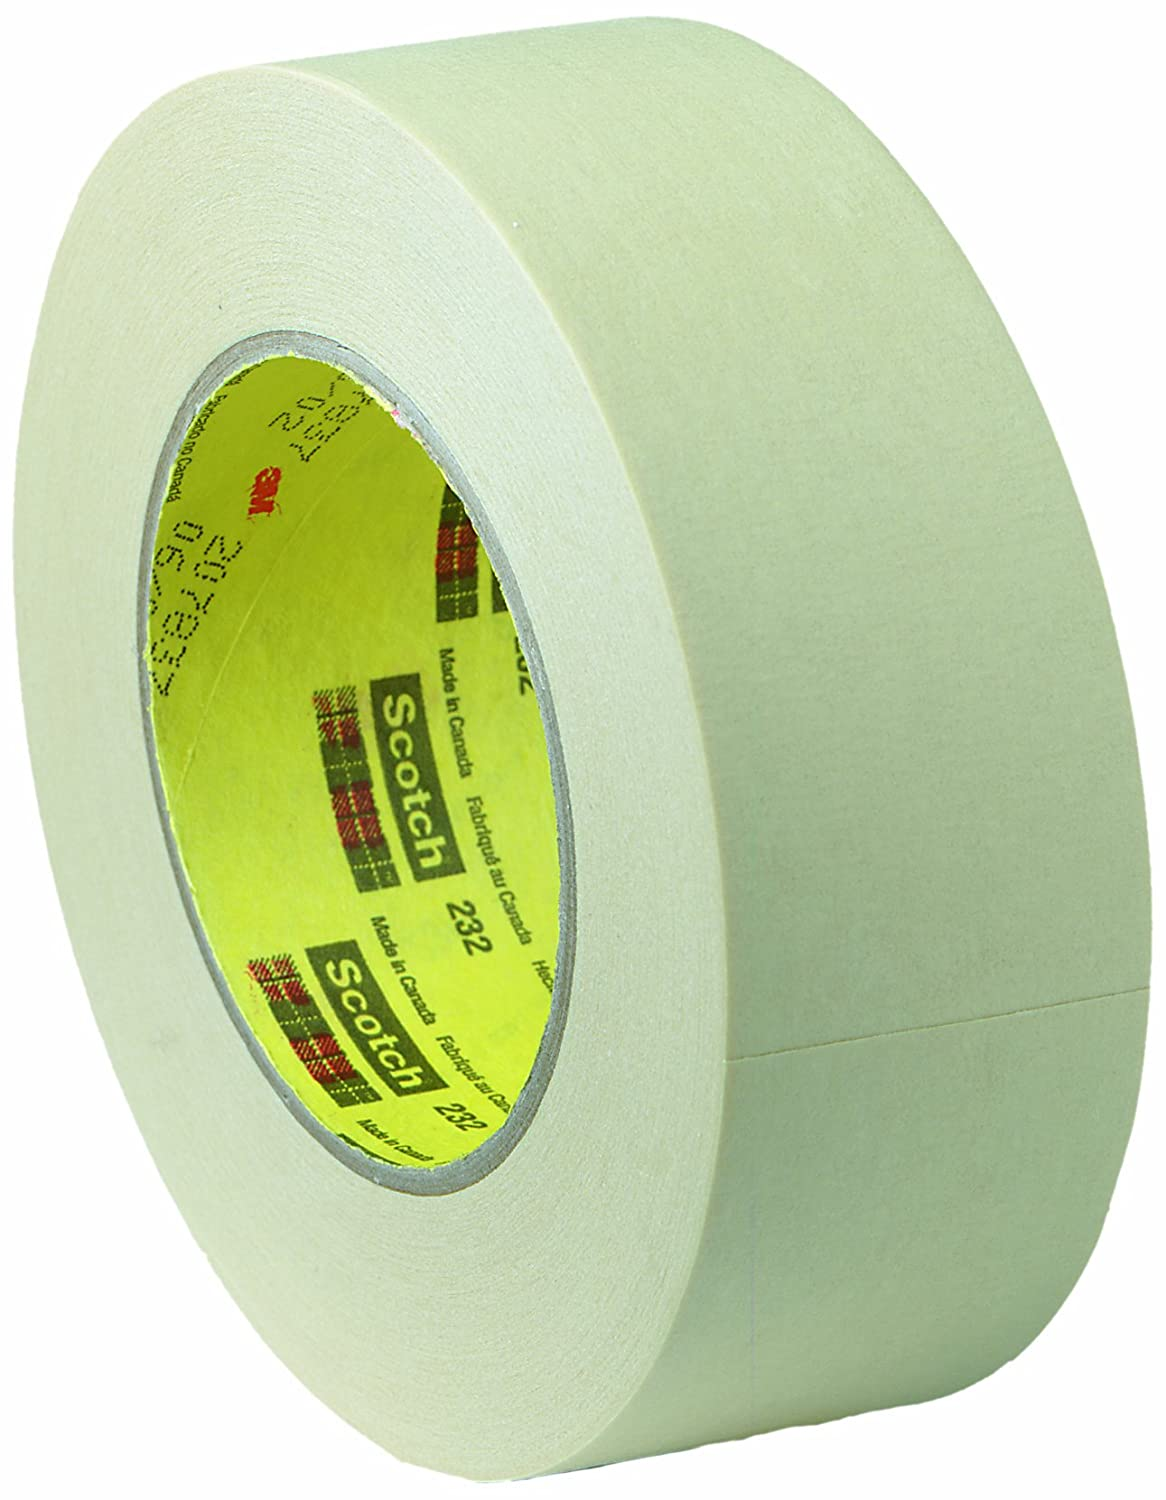 Case of 36 3M Office Products 232-1 Scotch High Performance Masking Tape 232 Tan 24 mm x 55 m